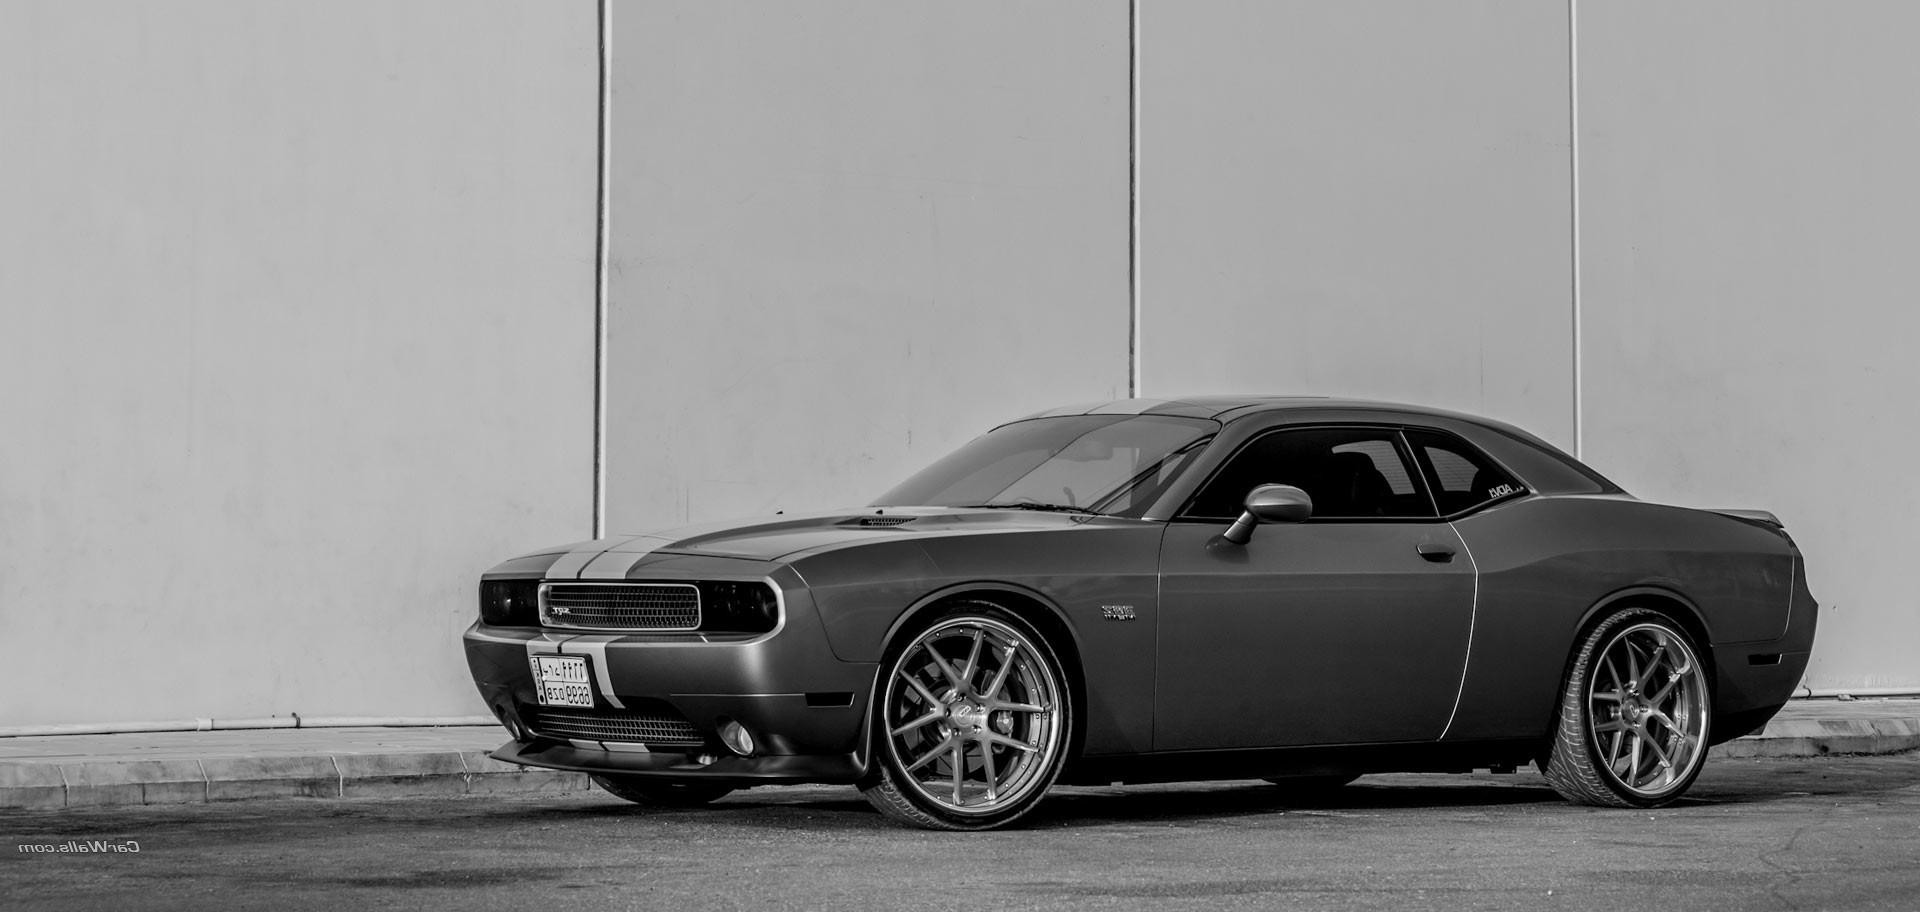 cars_muscle_dodge_challenger_srt8_adv1_hd-wallpaper-2863371